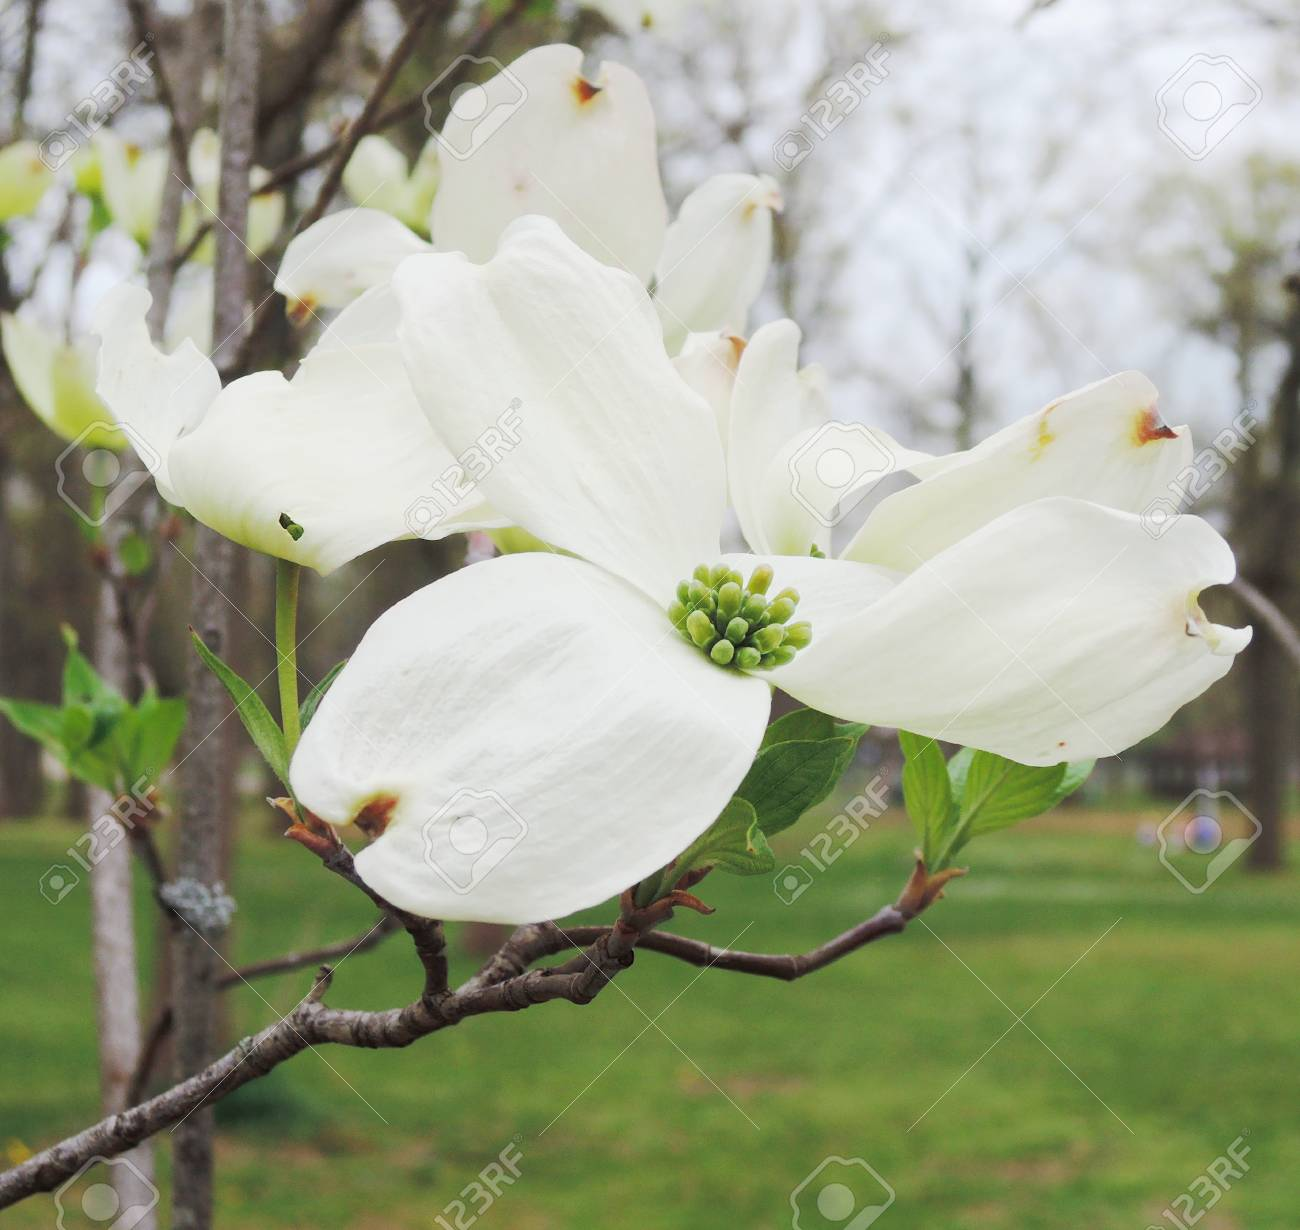 White Dogwood Tree Flowers Blooming Stock Photo Picture And Royalty